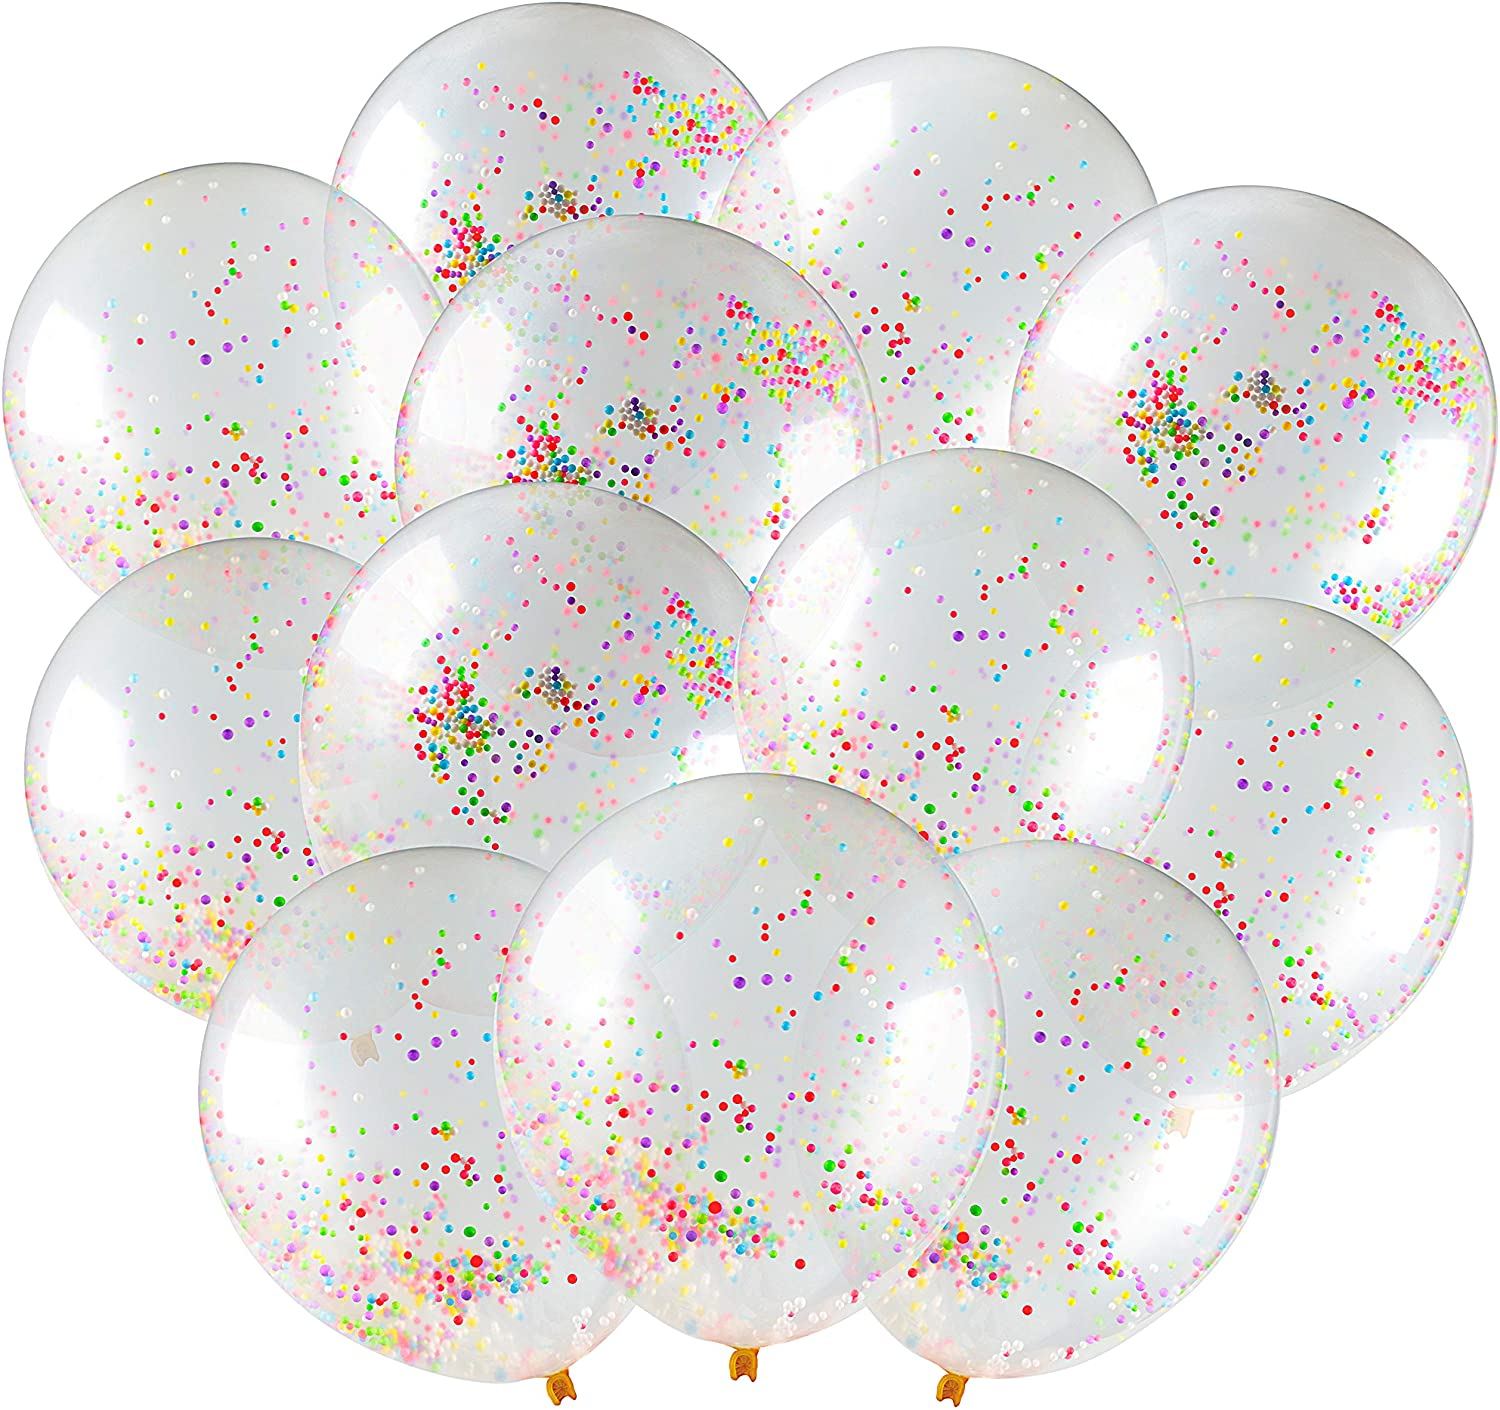 Confetti Balloons - SUPER-STATIC Confetti Birthday Balloons Rainbow Happy Birthday Party Balloons - Clear Balloons With Confetti Inside - Multicolor Sprinkle PRE-FILLED Colorful Latex Balloons For Birthday Party, Engagement Party Decorations For Party, Bride Bridal Shower Decor Ballon Baloon, Wedding Balloons, Girl Boy Baby Shower Balloons Decorations, Large Christmas Parties, Sweet 16 Balloons Pack, Globos De Cumpleaños (Red White Blue Gold Rose Pink Yellow Purple Green) (12-Pack, Rainbow)